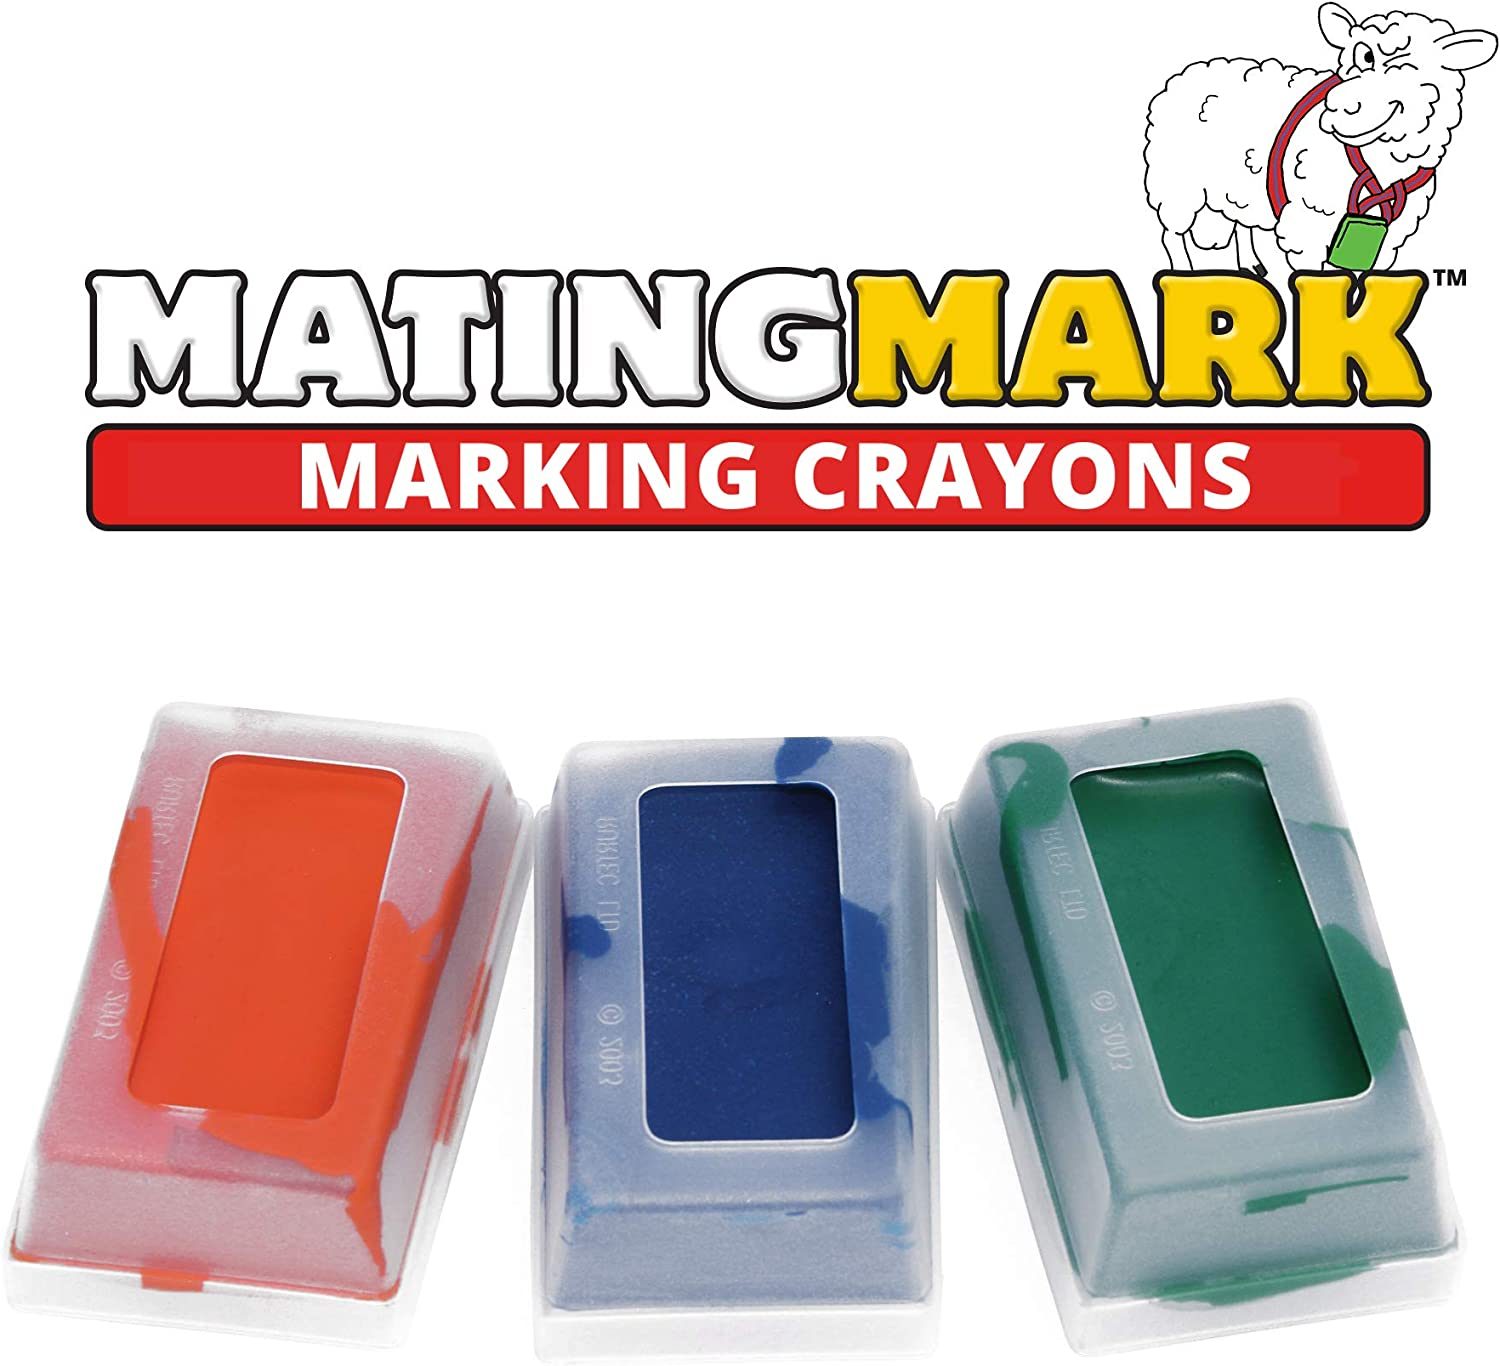 3 Pack Orange MATINGMARK Sheep /& Goat Mating Crayon Block Marker for Ram Breeding//Marking Harness by Rurtec Blue Green MILD Temperature Made in New Zealand